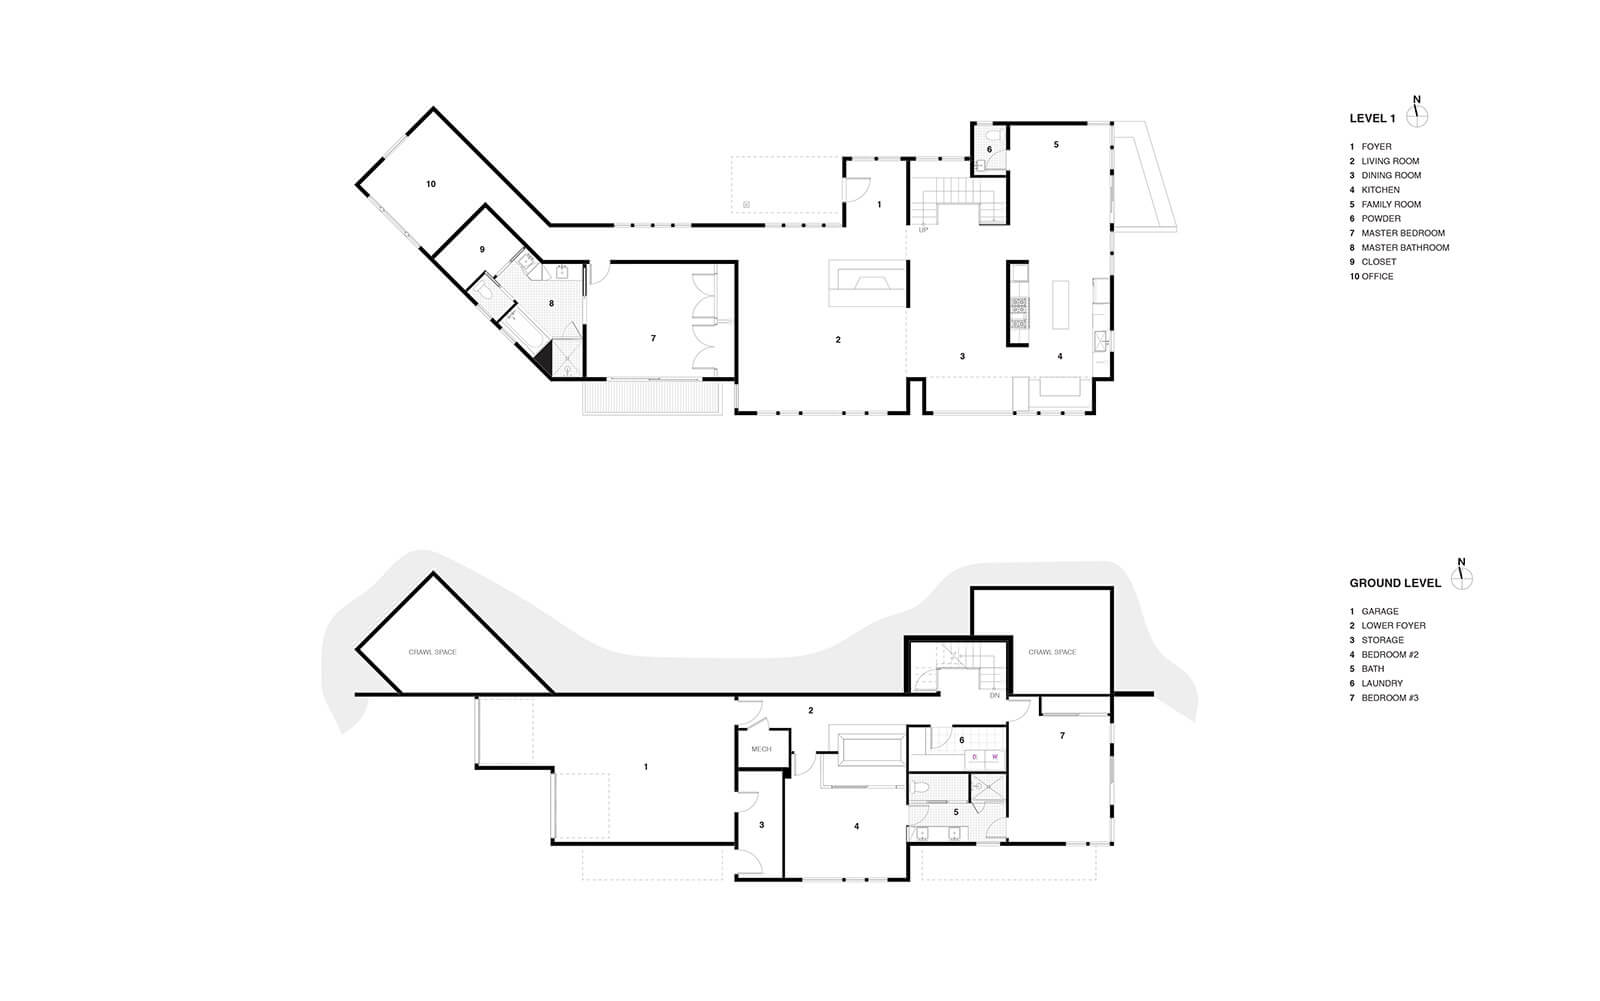 studio vara residential Kentfield drawing plan